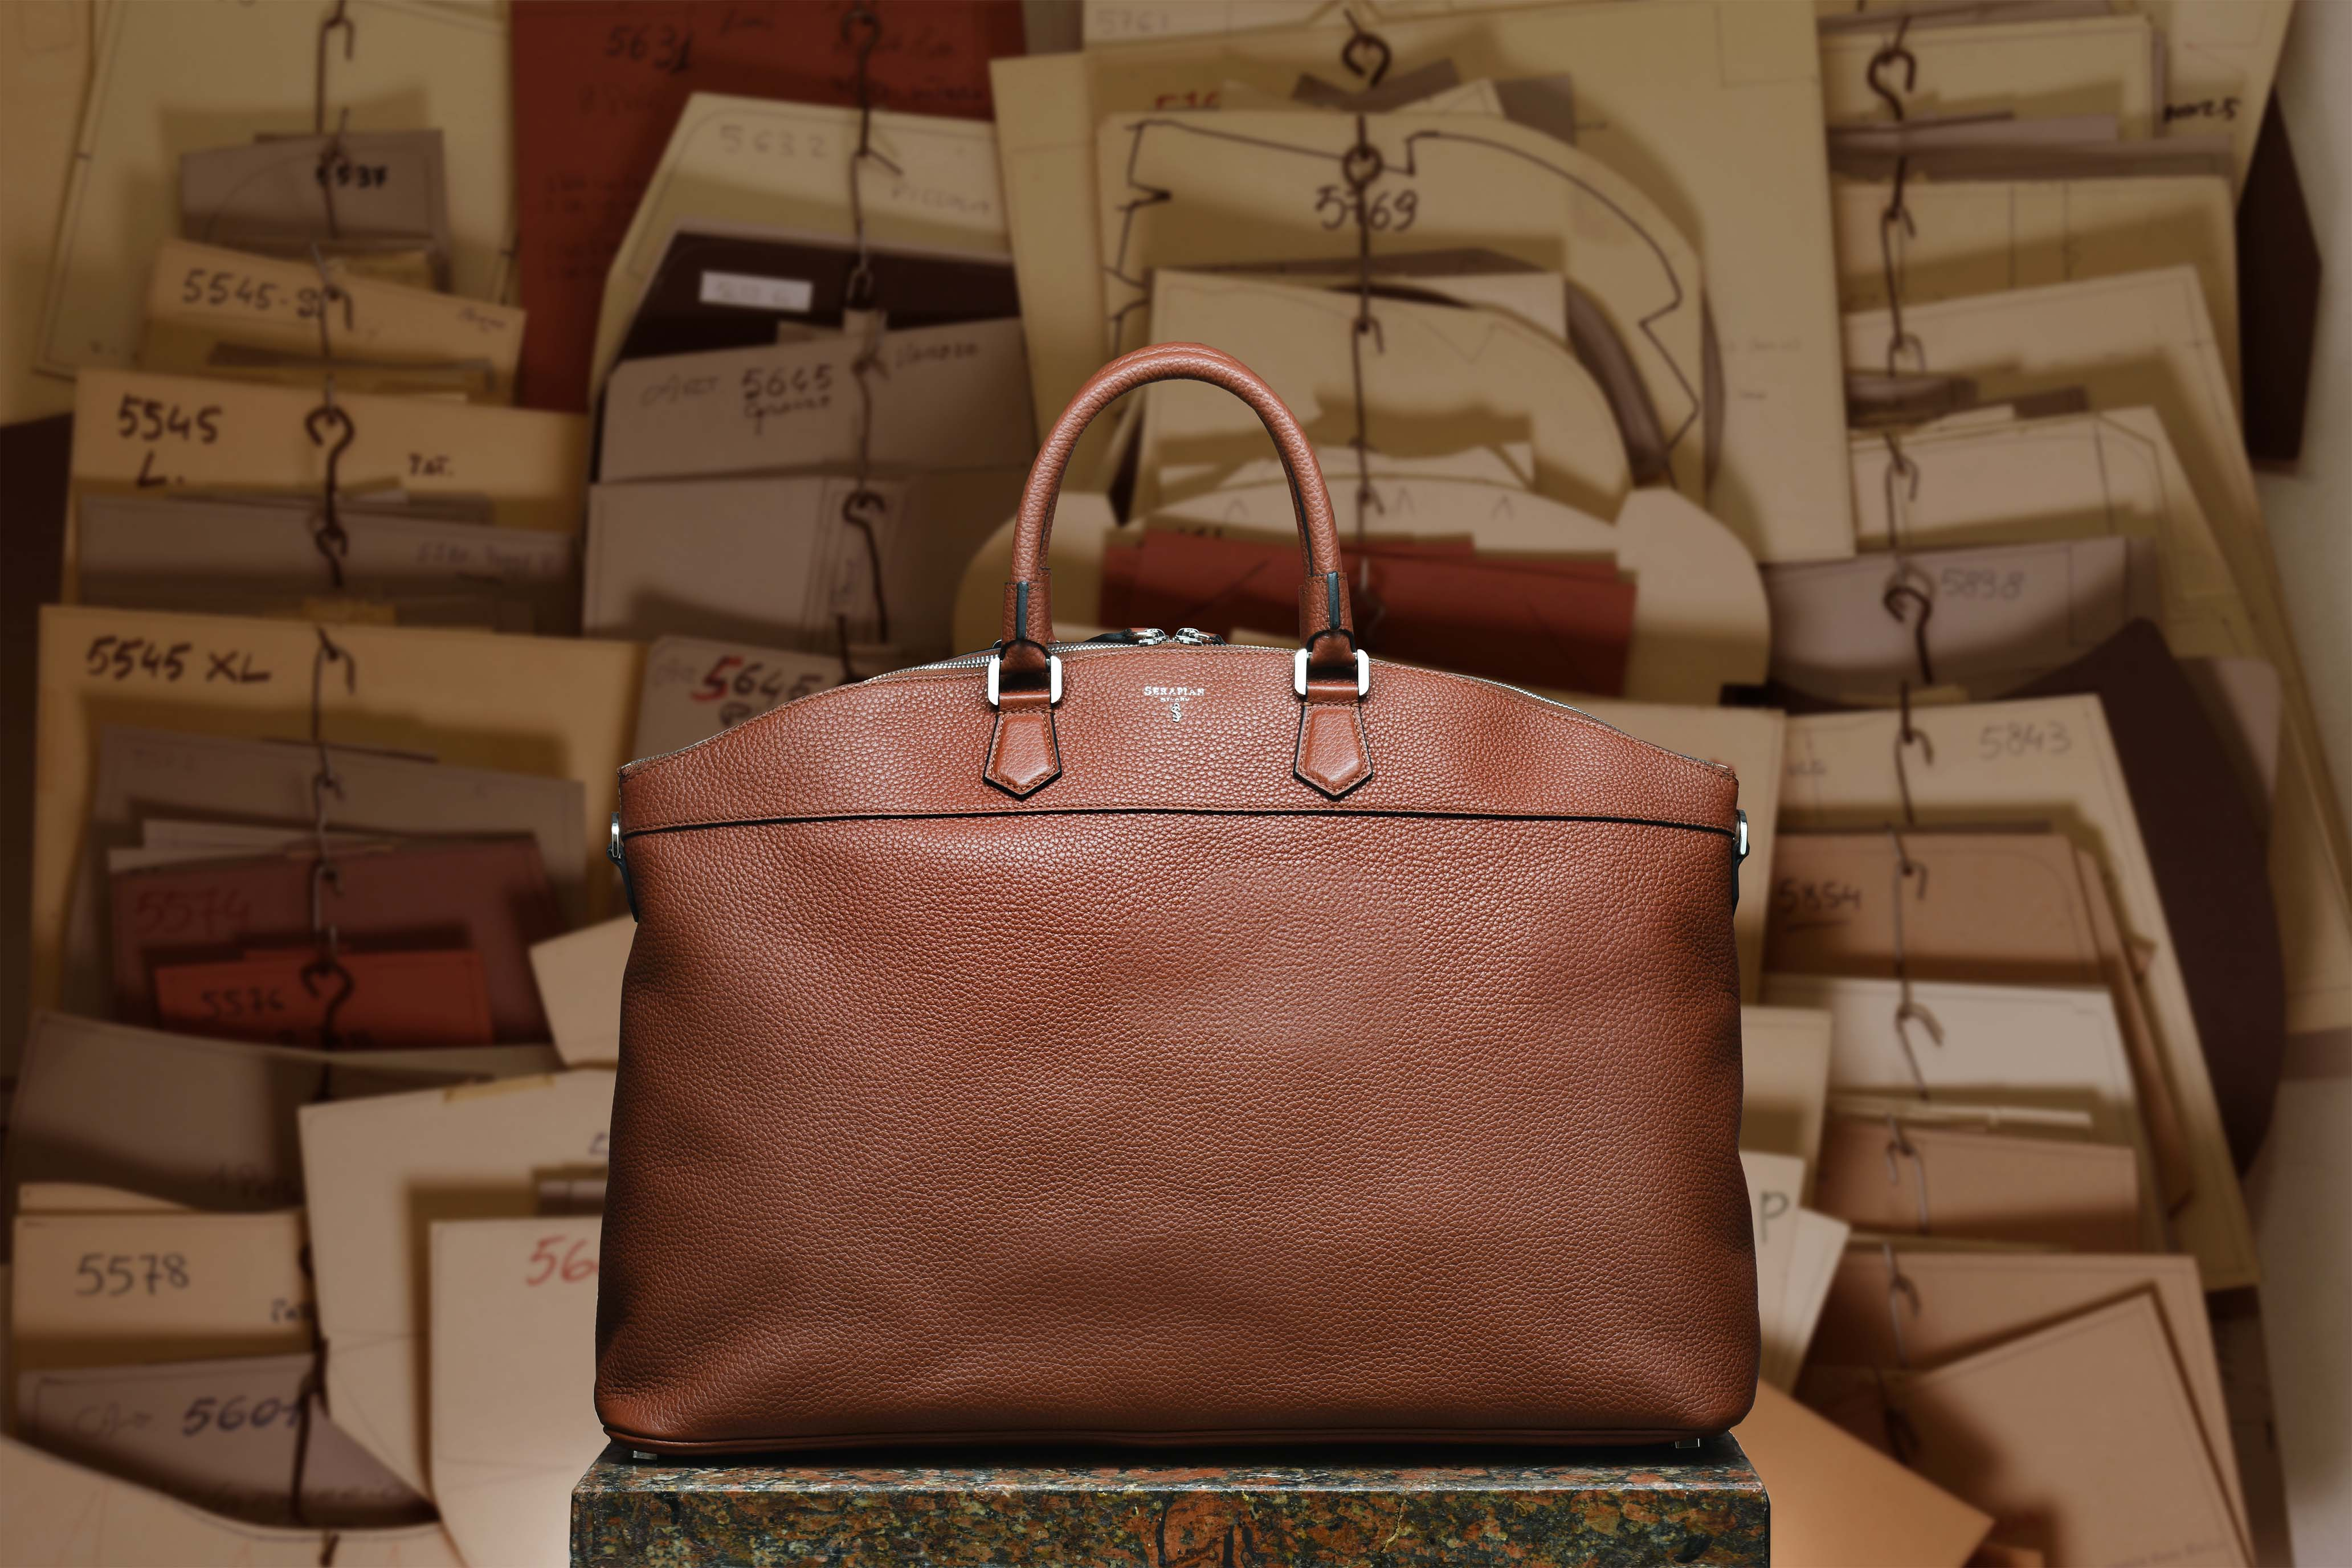 Brown leather East/West Leisure Bag for travel or free time | View more